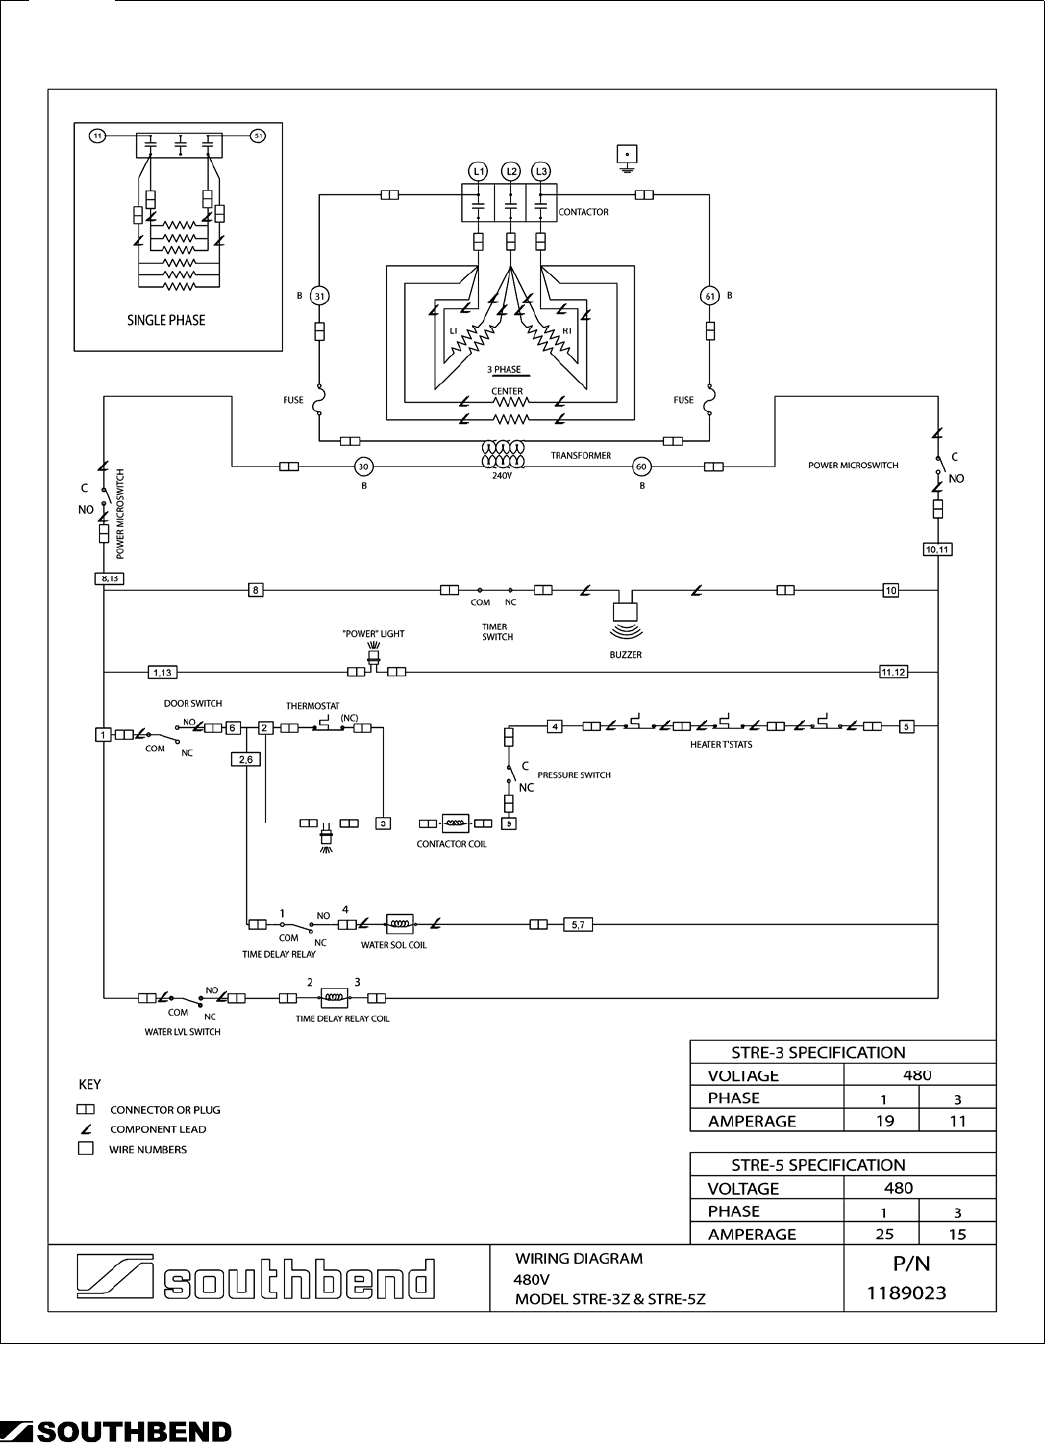 738215f8 34d0 4164 9215 49e14448588b bg21 page 33 of southbend electric steamer stre 5ez user guide southbend r2 steamer wiring diagram at crackthecode.co